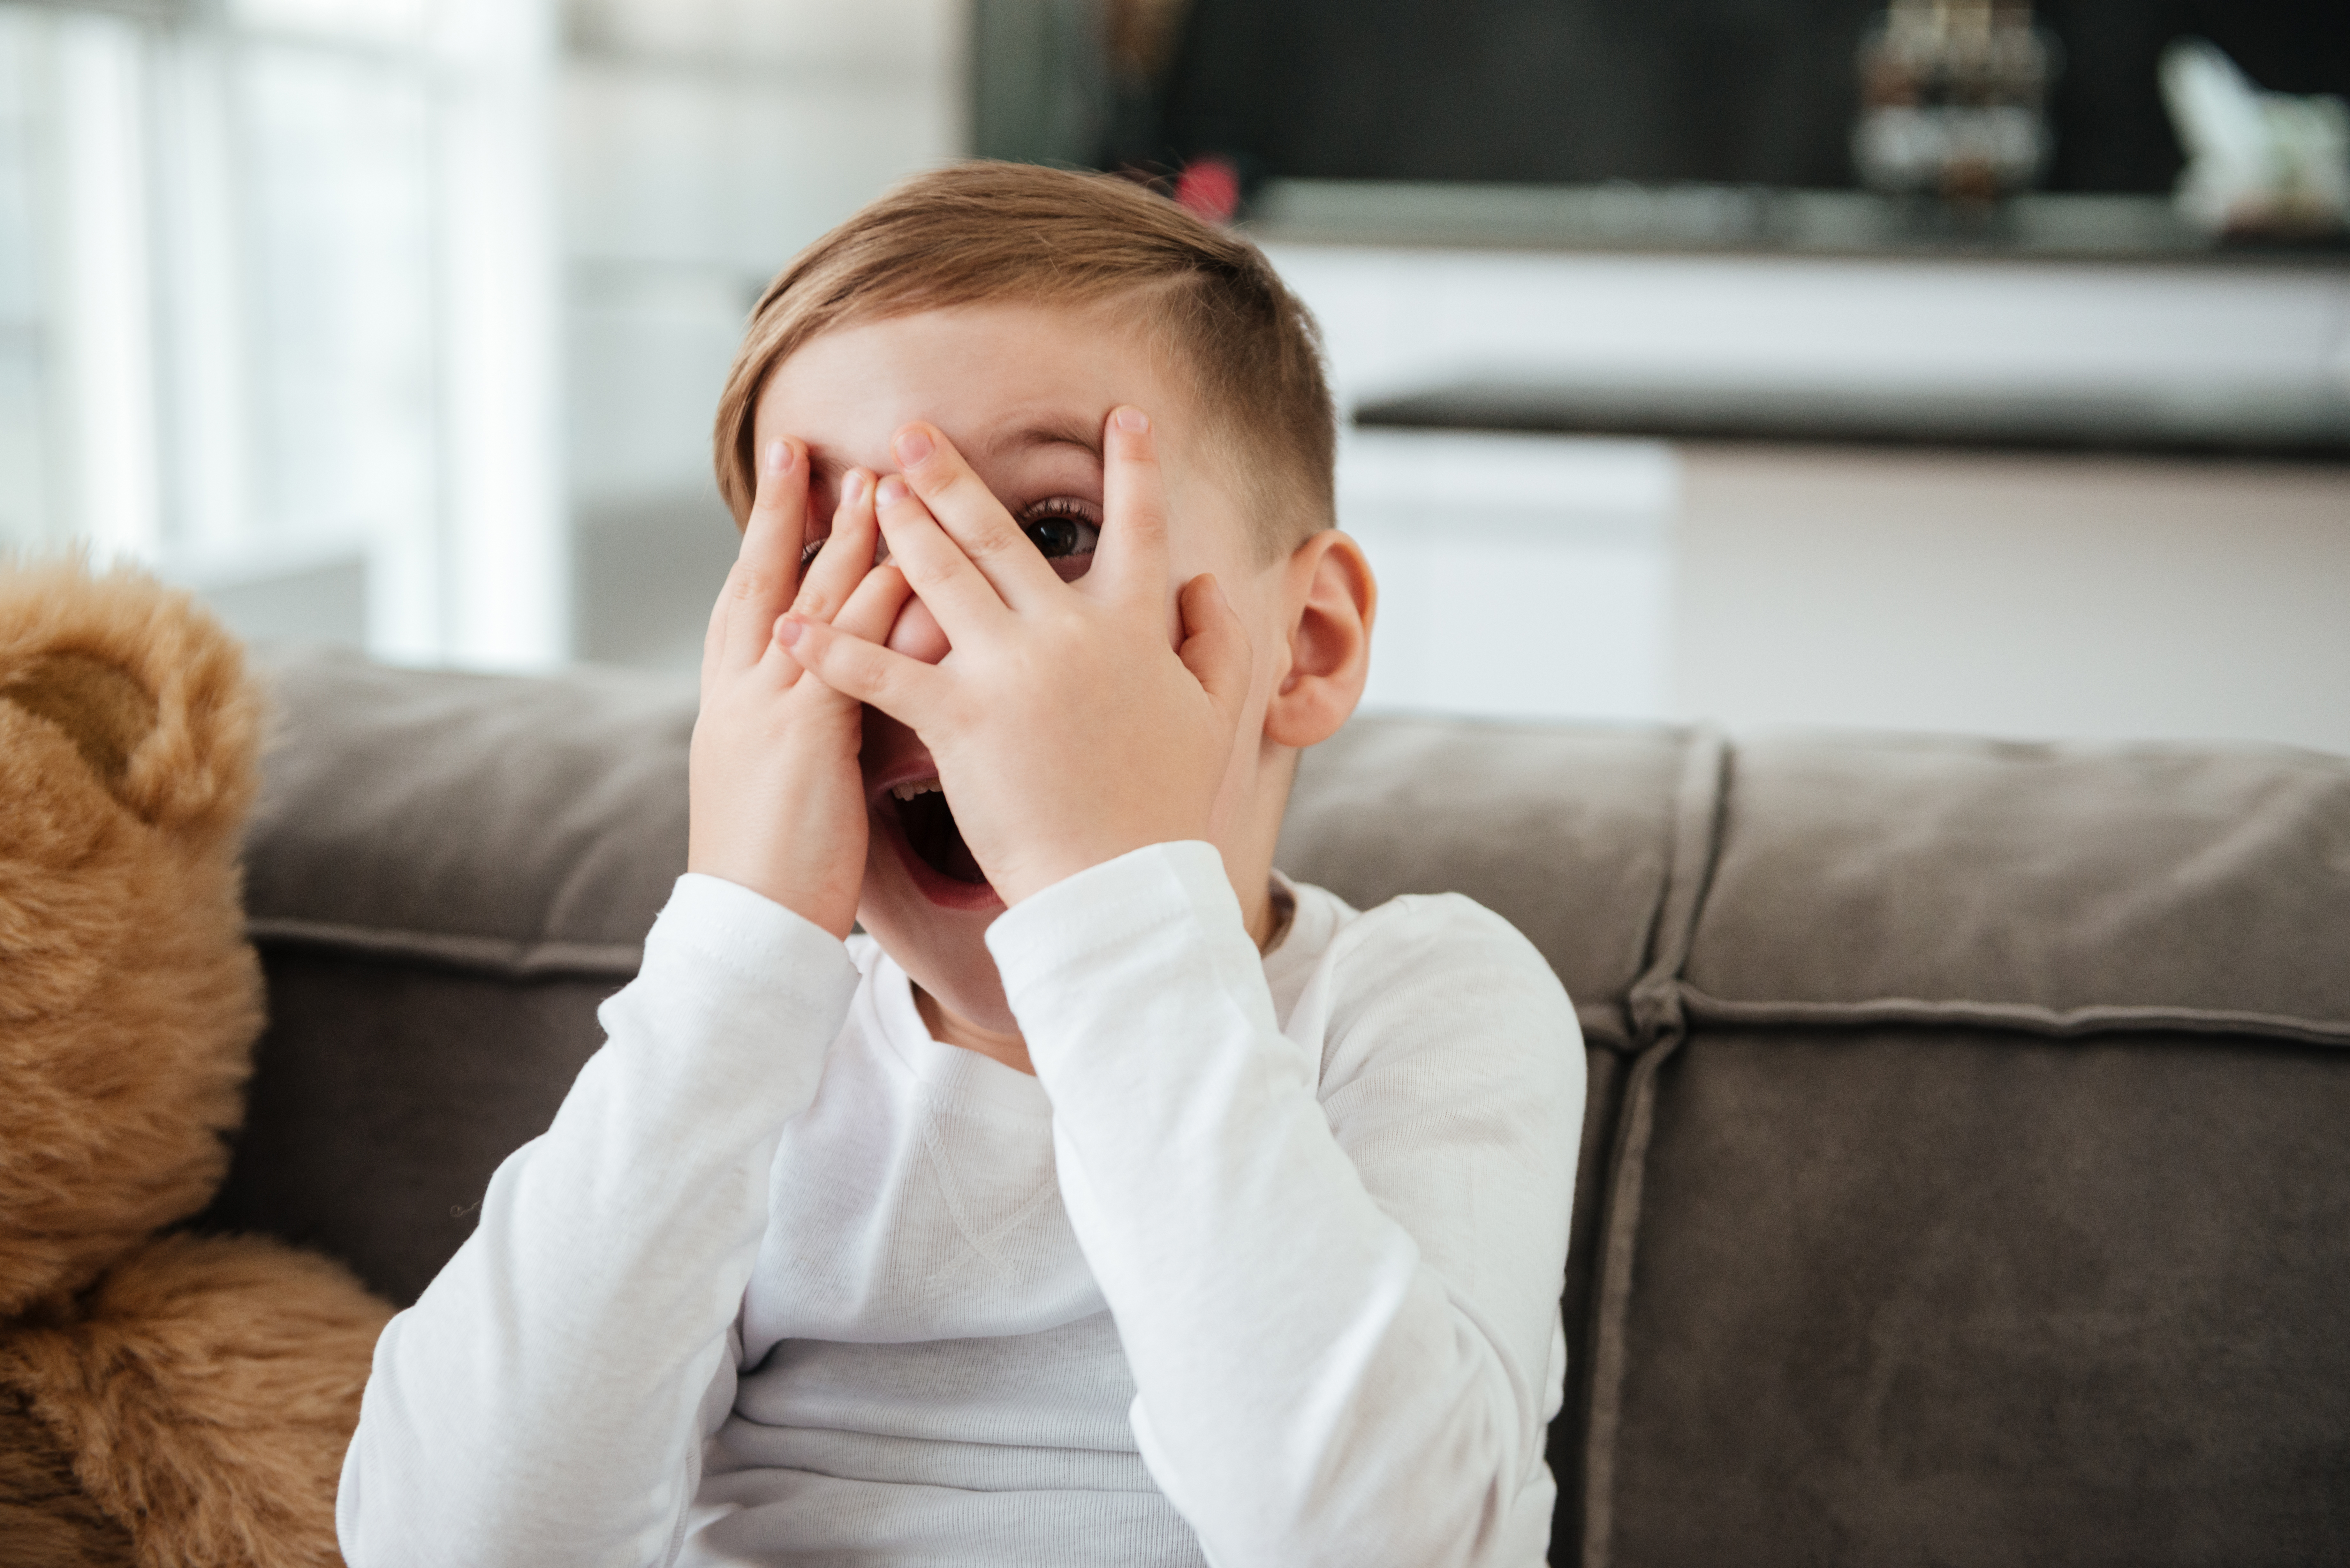 Pictured is a scared child. SHUTTERSTOCK/ Dean Drobot